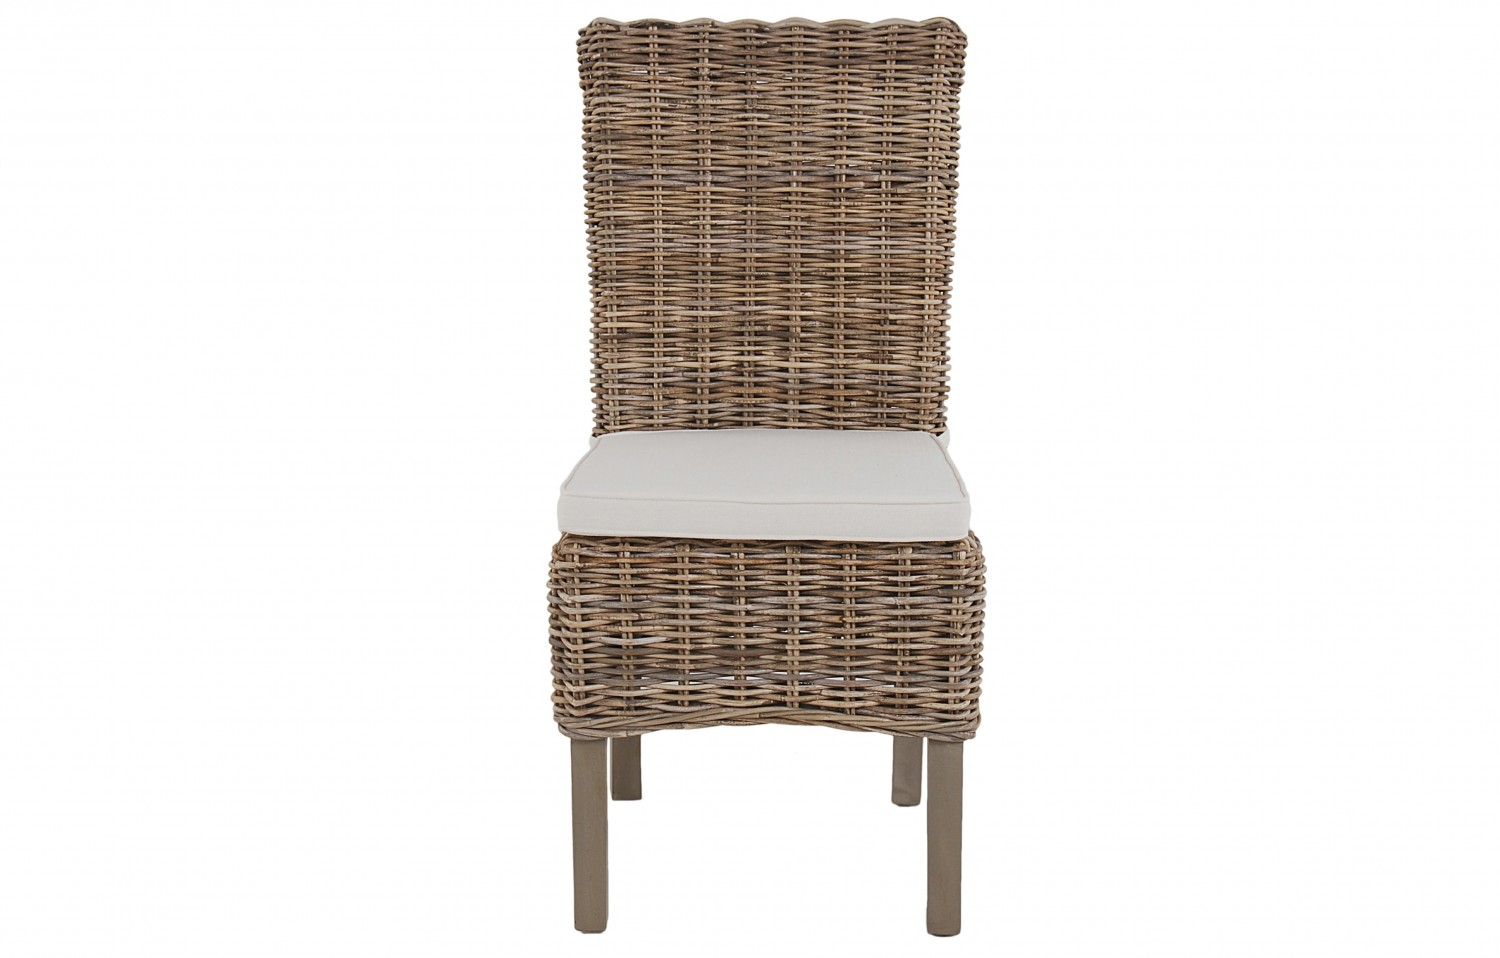 Maya High Back Rattan Chair In Natural Colour Pertaining To High Back Sofas And Chairs (View 11 of 15)